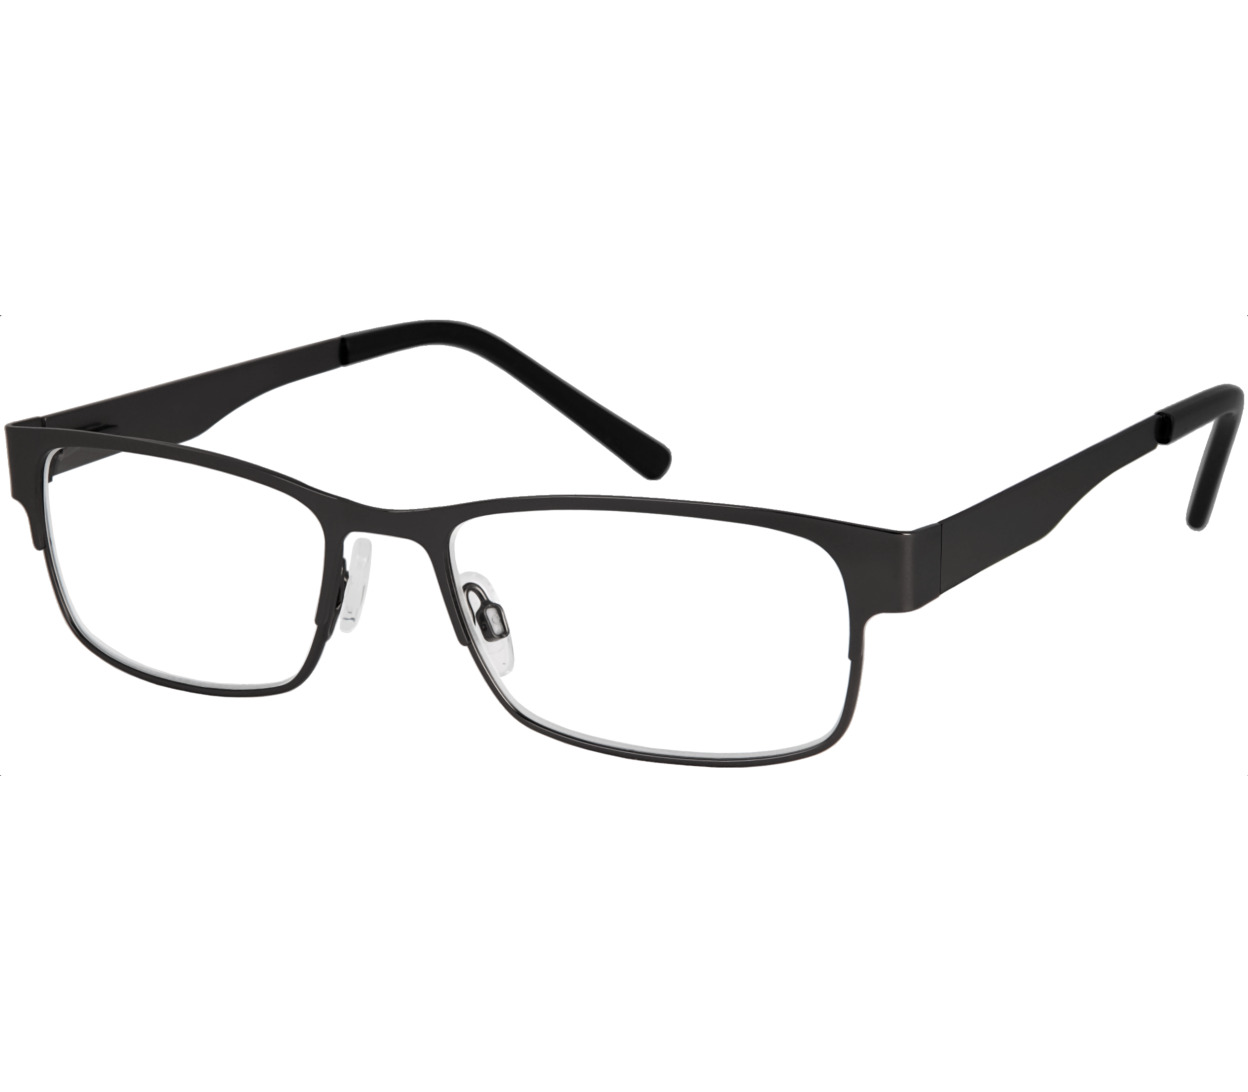 Main Image (Angle) - Kendrick (Black) Classic Reading Glasses